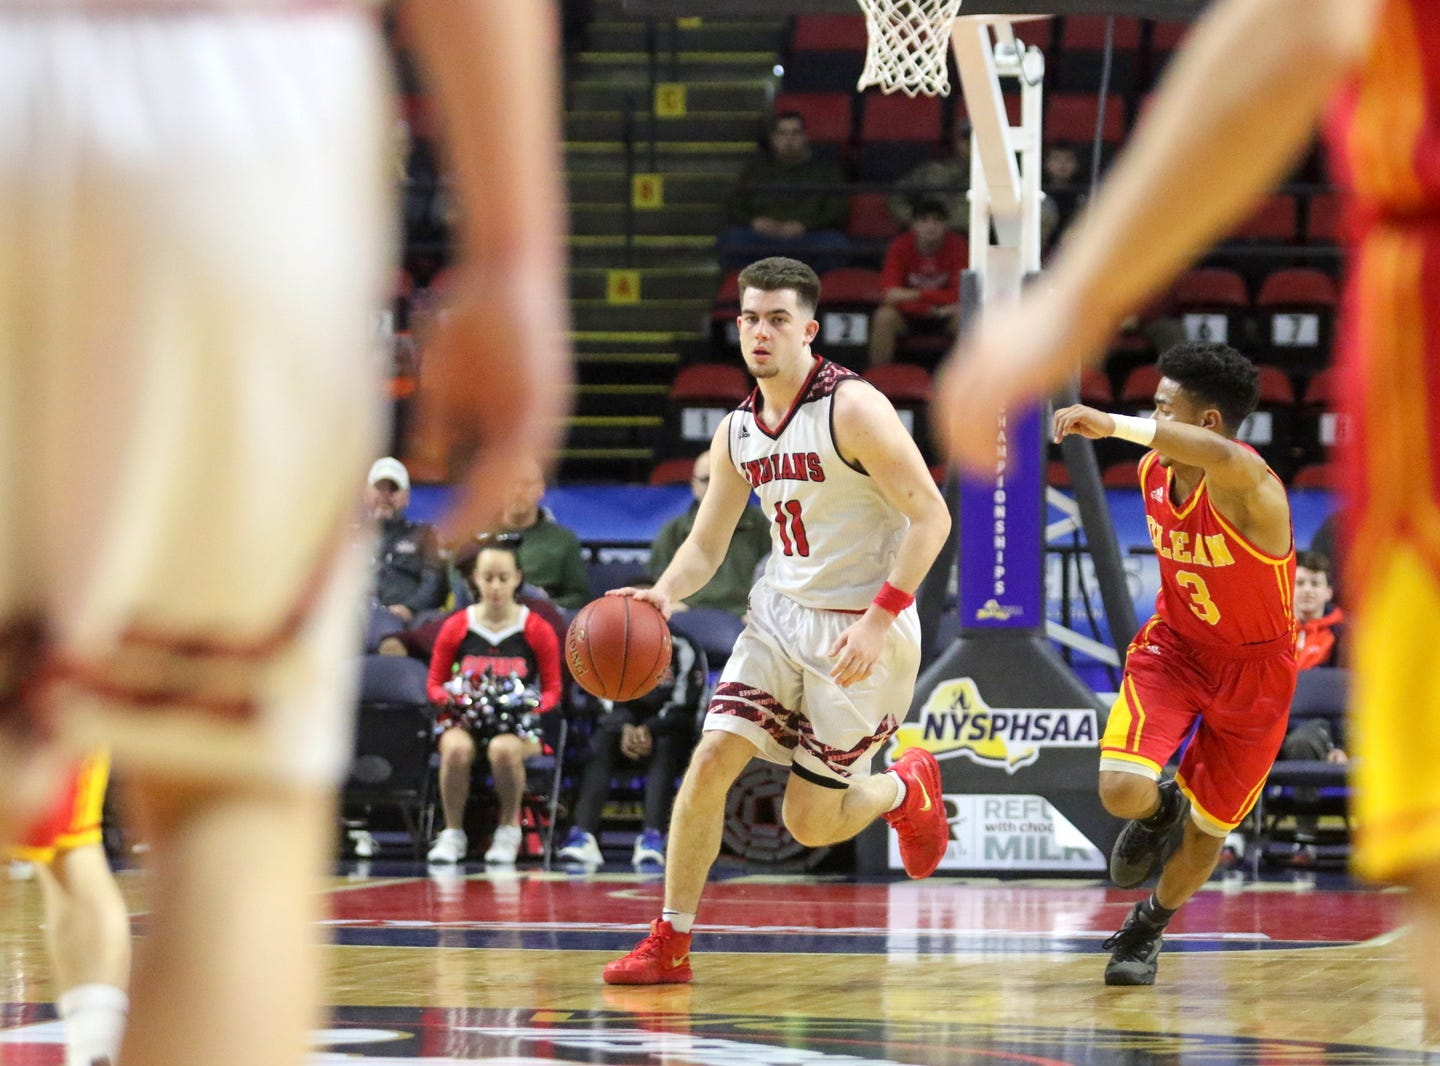 Joseph Girard III of Glens Falls dribbles up the court during an 83-63 win over Olean in a Class B boys basketball state semifinal March 15, 2019 at Floyd L. Maines Veterans Memorial Arena in Binghamton.